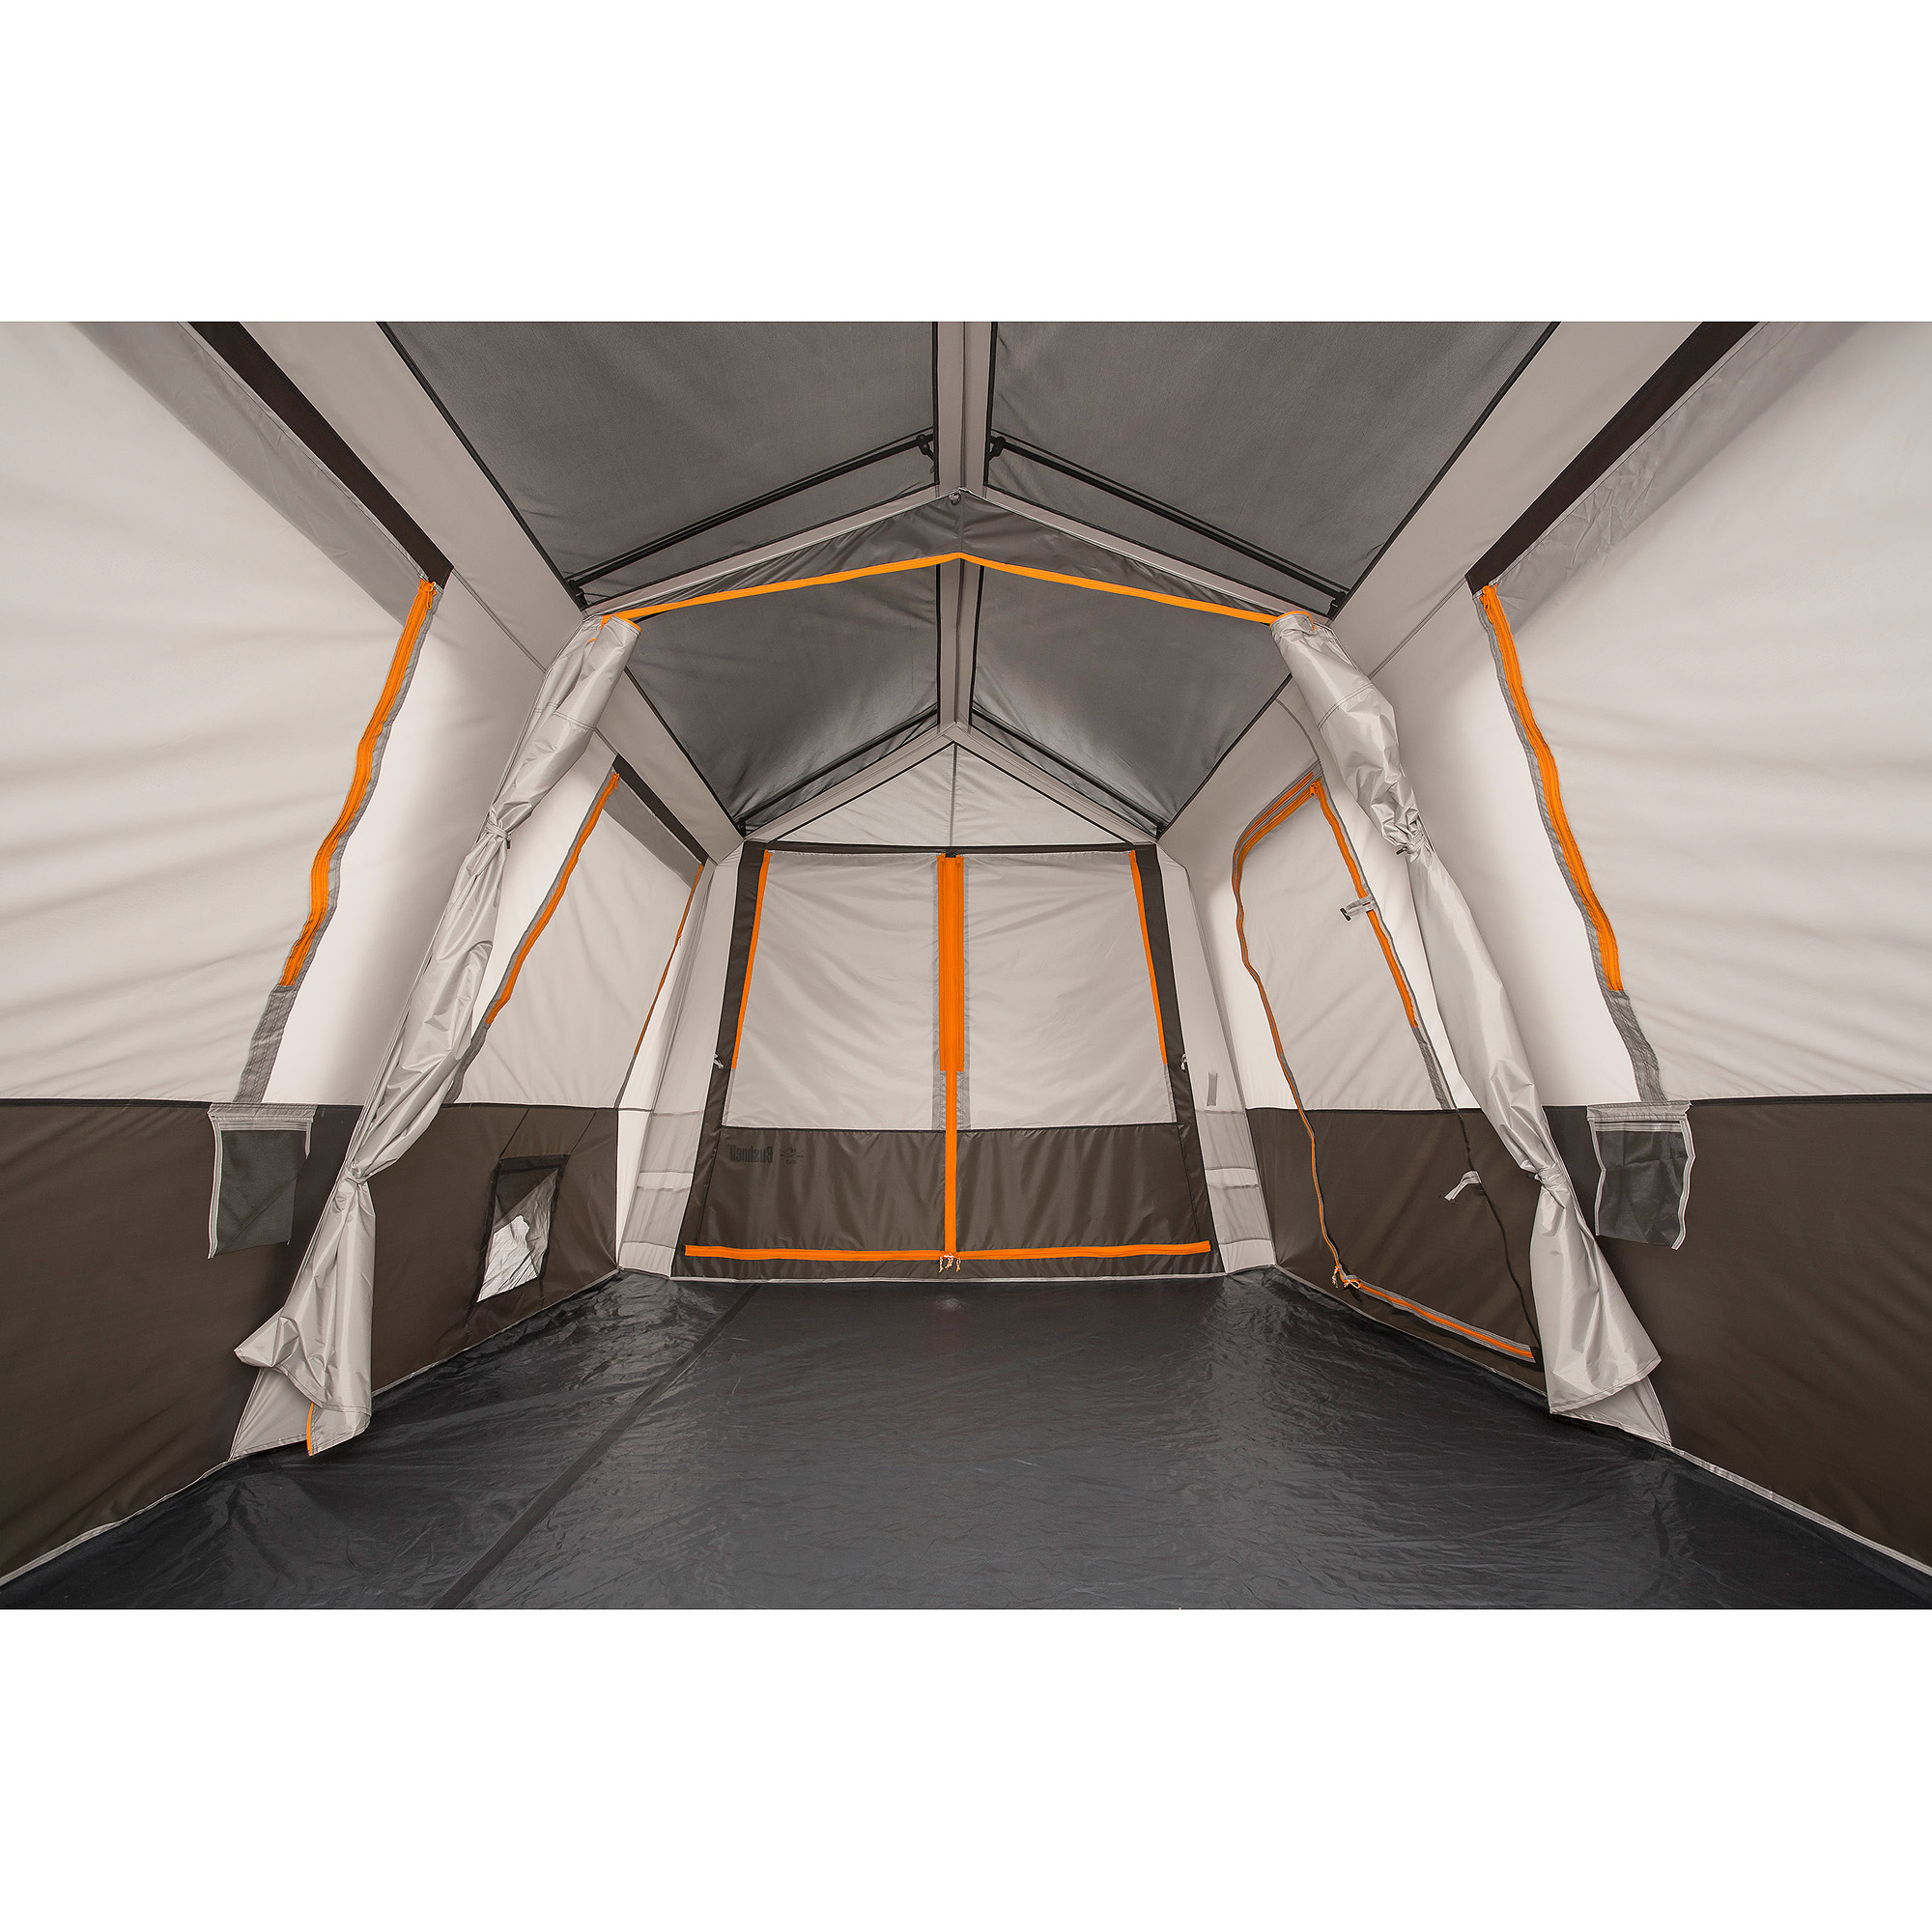 Bushnell Shield Series 15 X 9 Instant Cabin Tent Sleeps